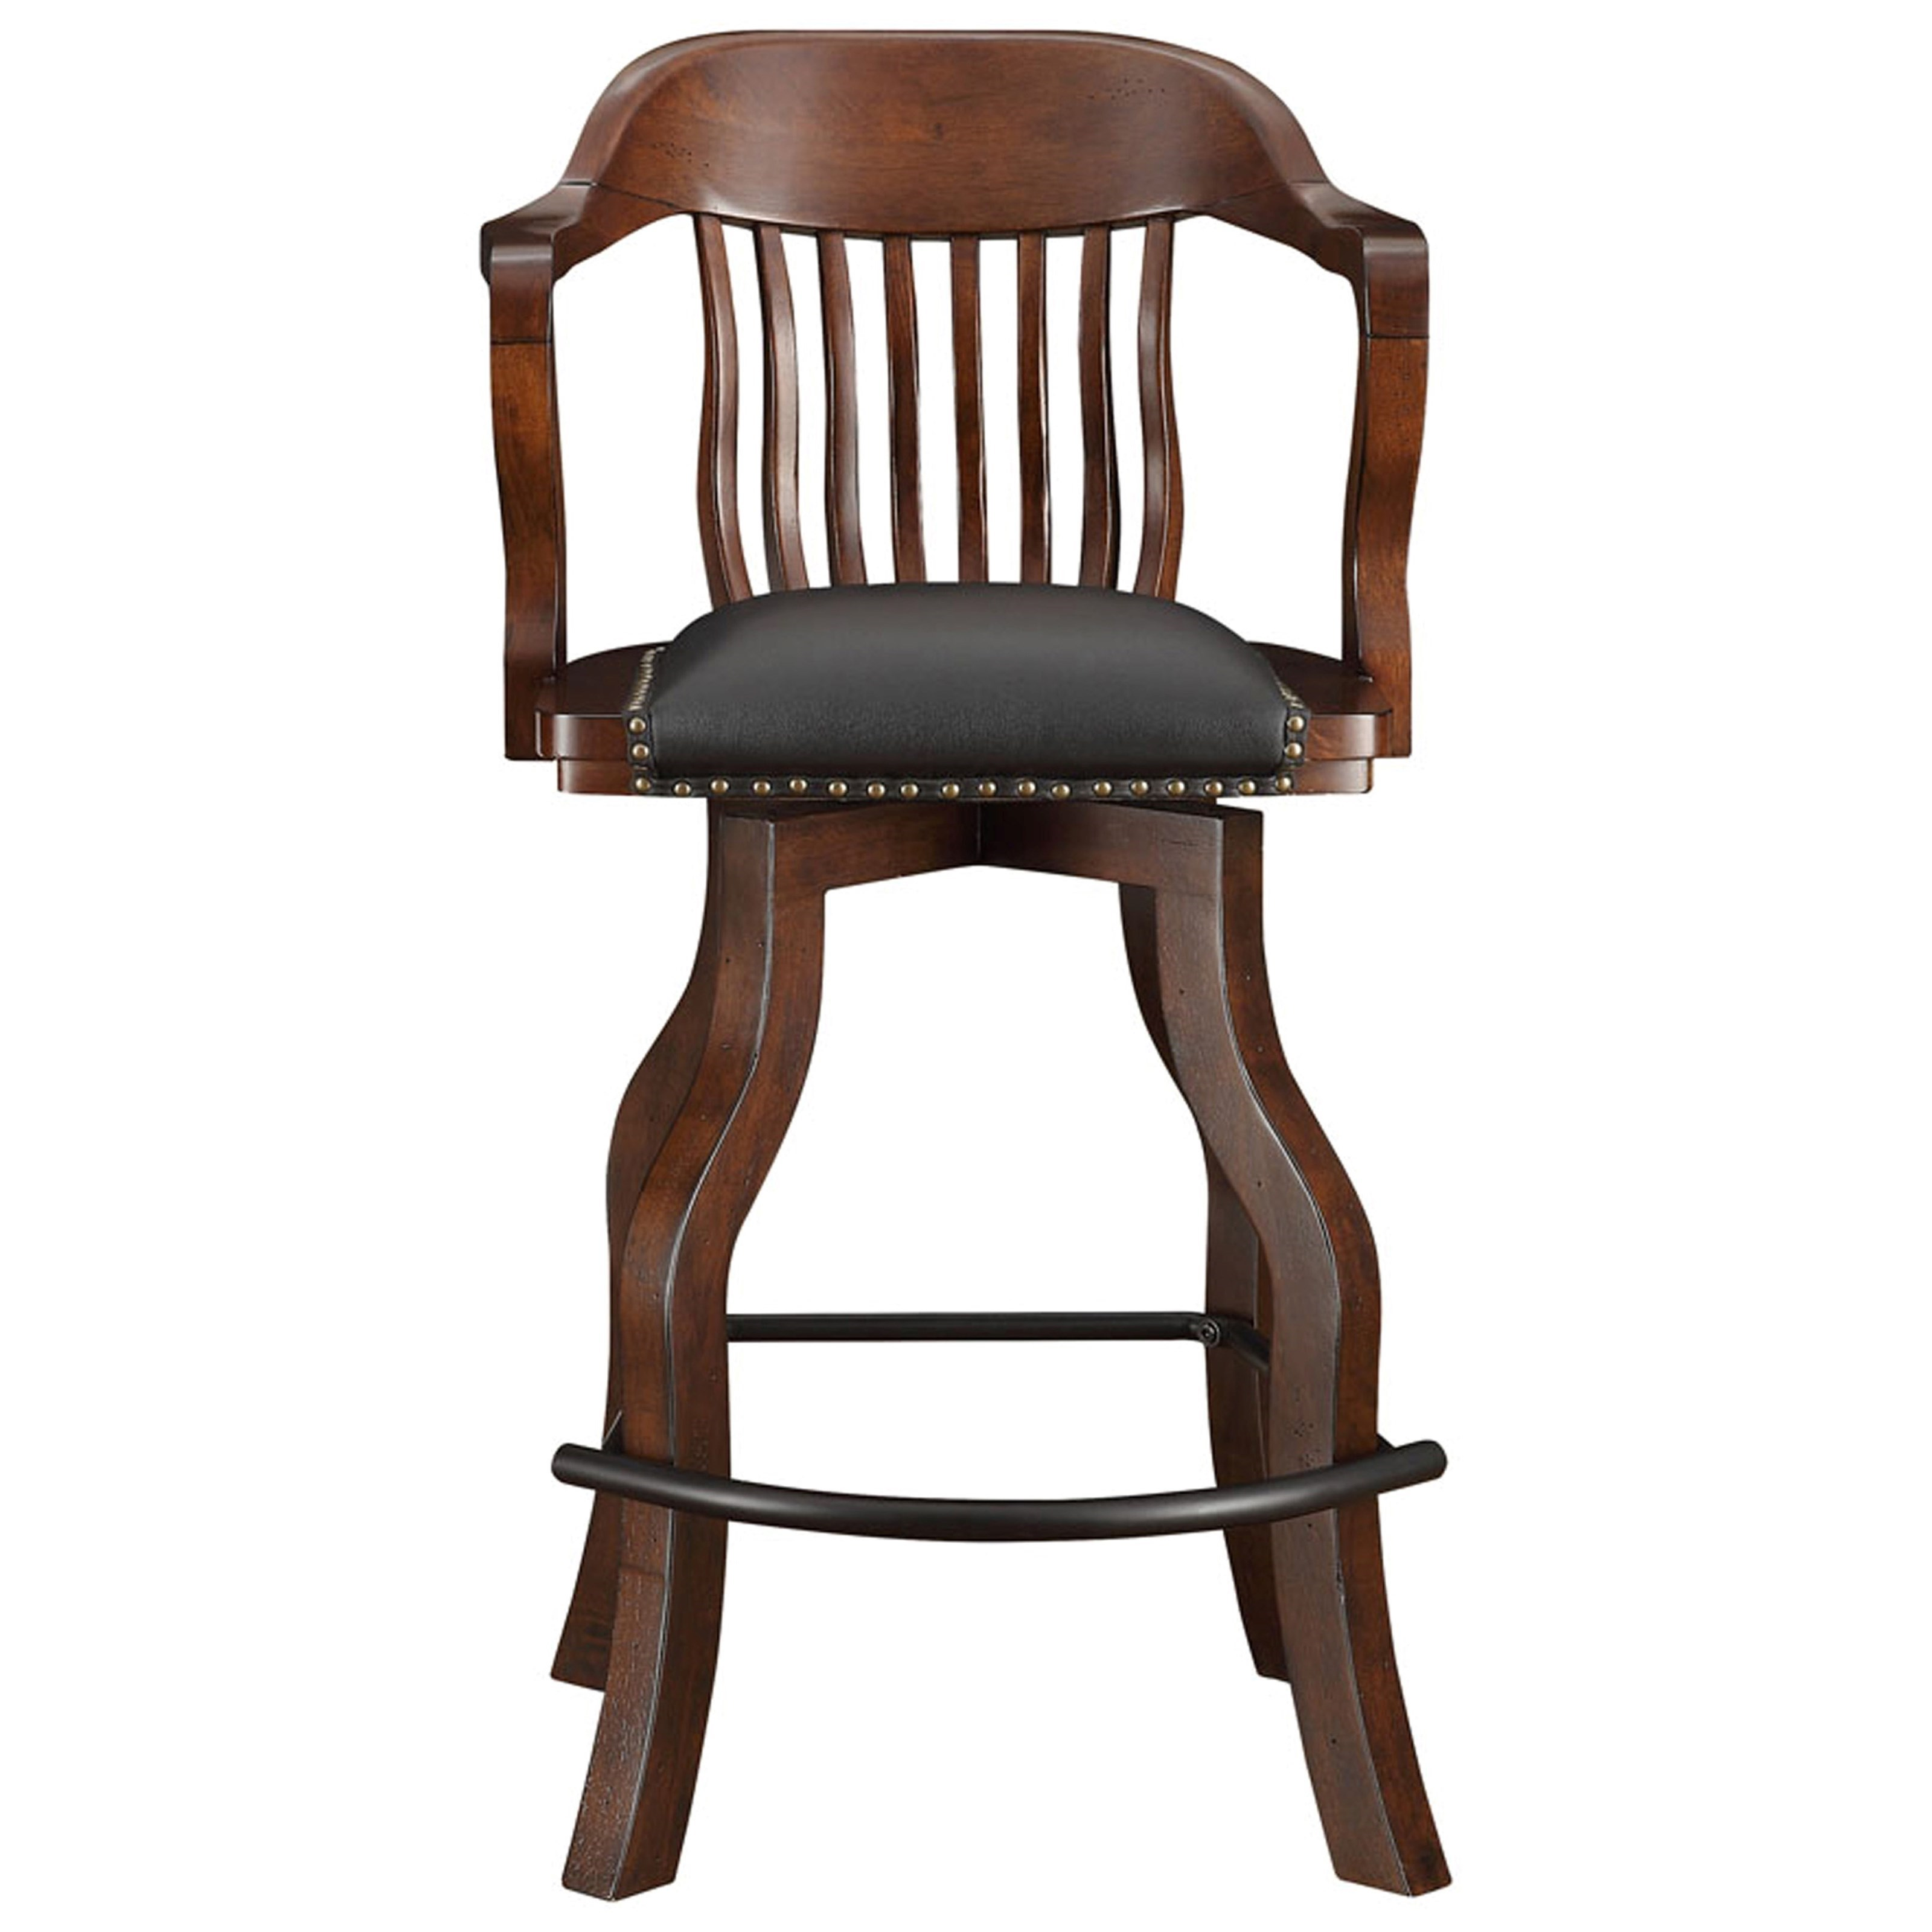 E C I Furniture Bar Stools 7045 35 Sbs Spectator Stool